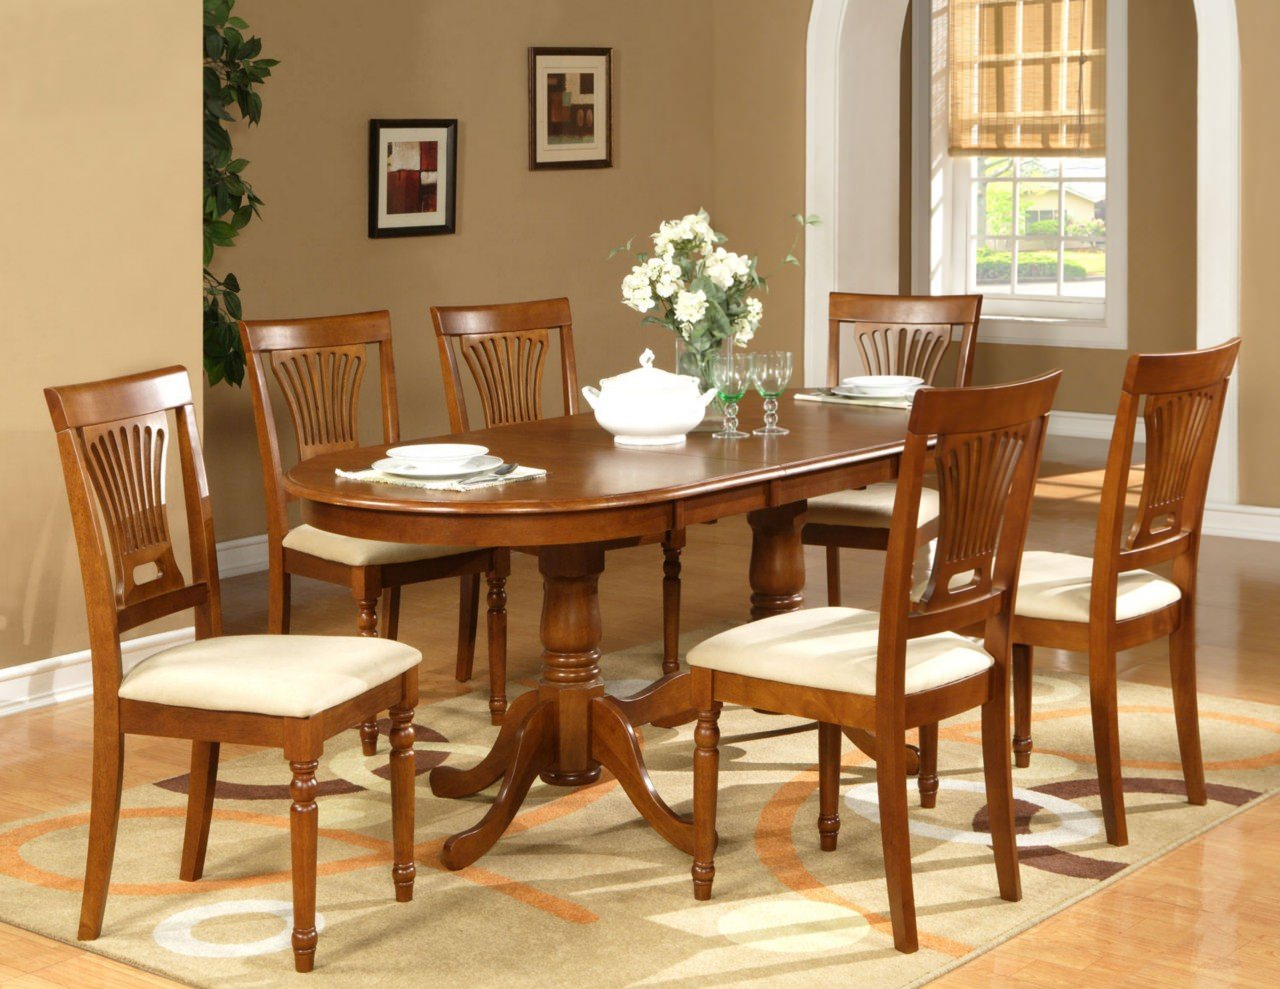 Dining Room Suites Dining Room Suites Dining Room Sets Other Dining Rooms Sets Magnificent On Other For Room Dining Room Suites Dining Room Furniture For